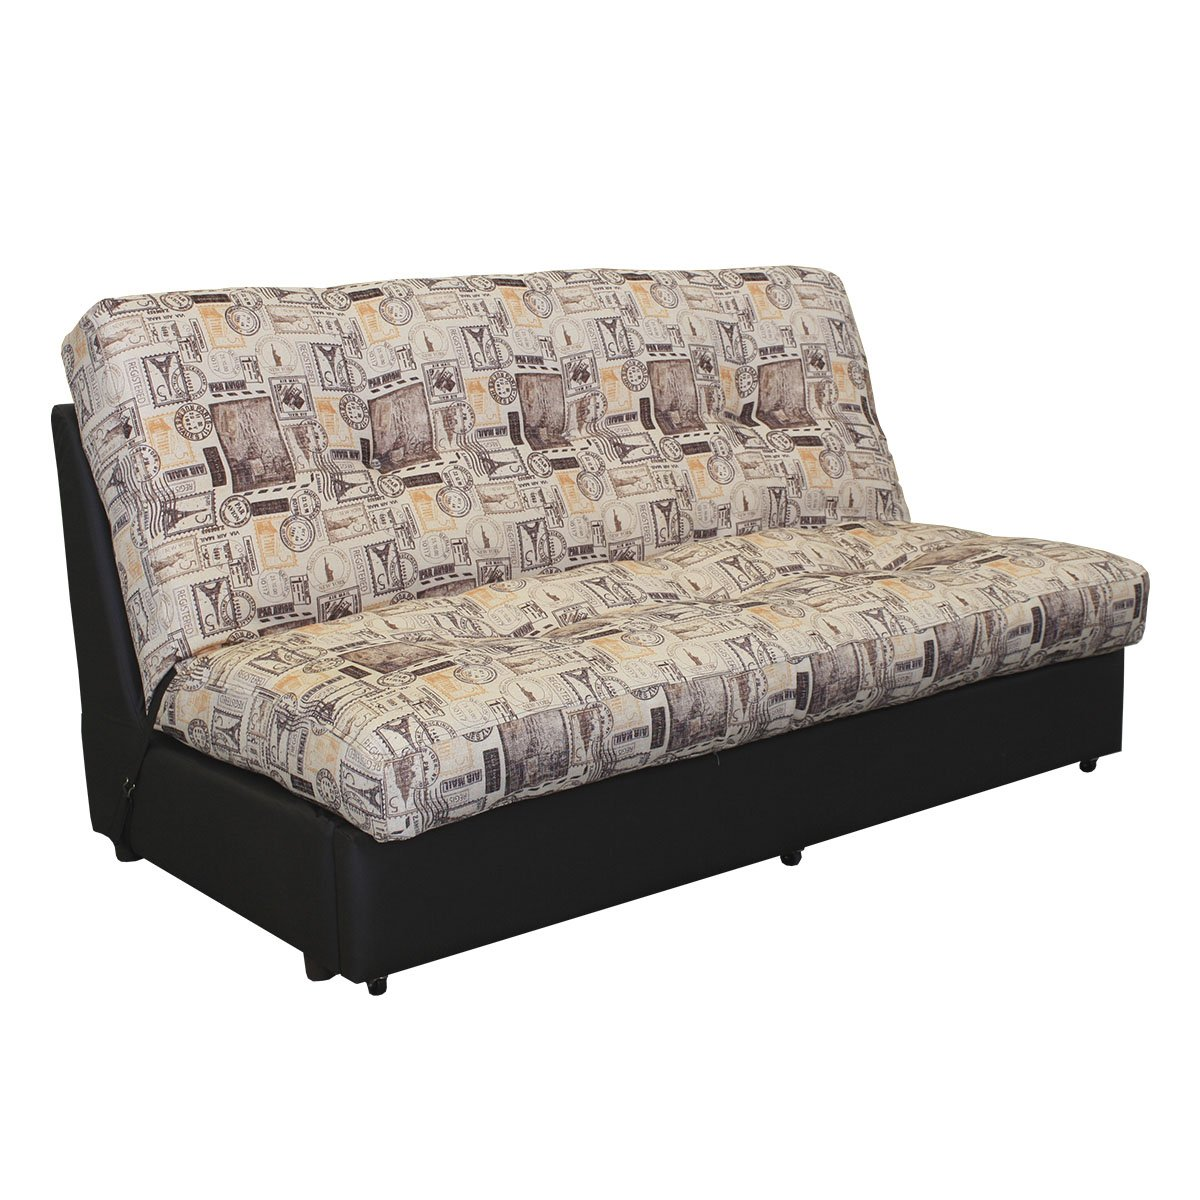 Photo Sofa Cama Individual Images Sofas Camas